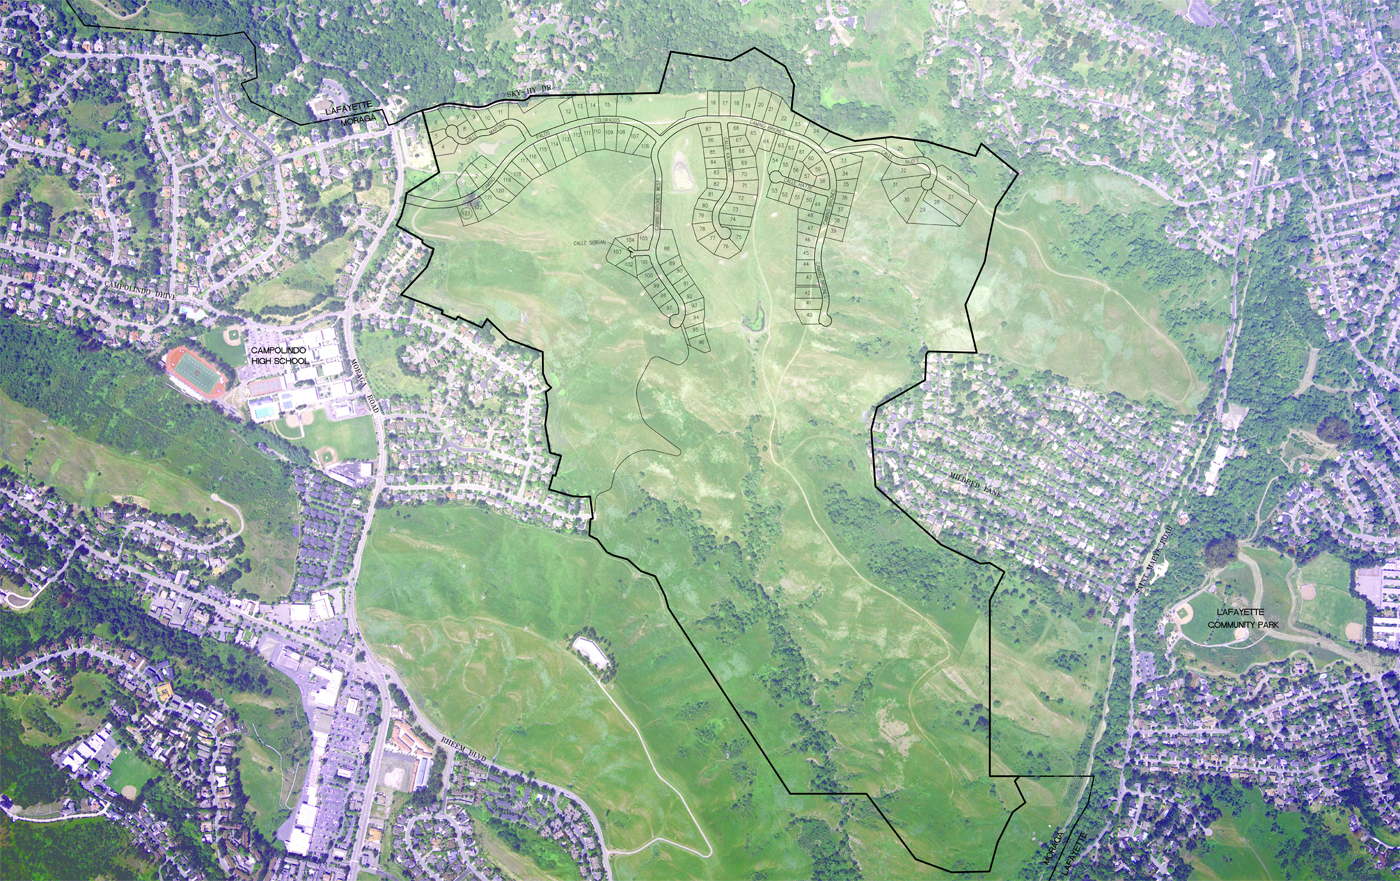 Aerial photography of vacant land with a master planned community plan overlaid on it